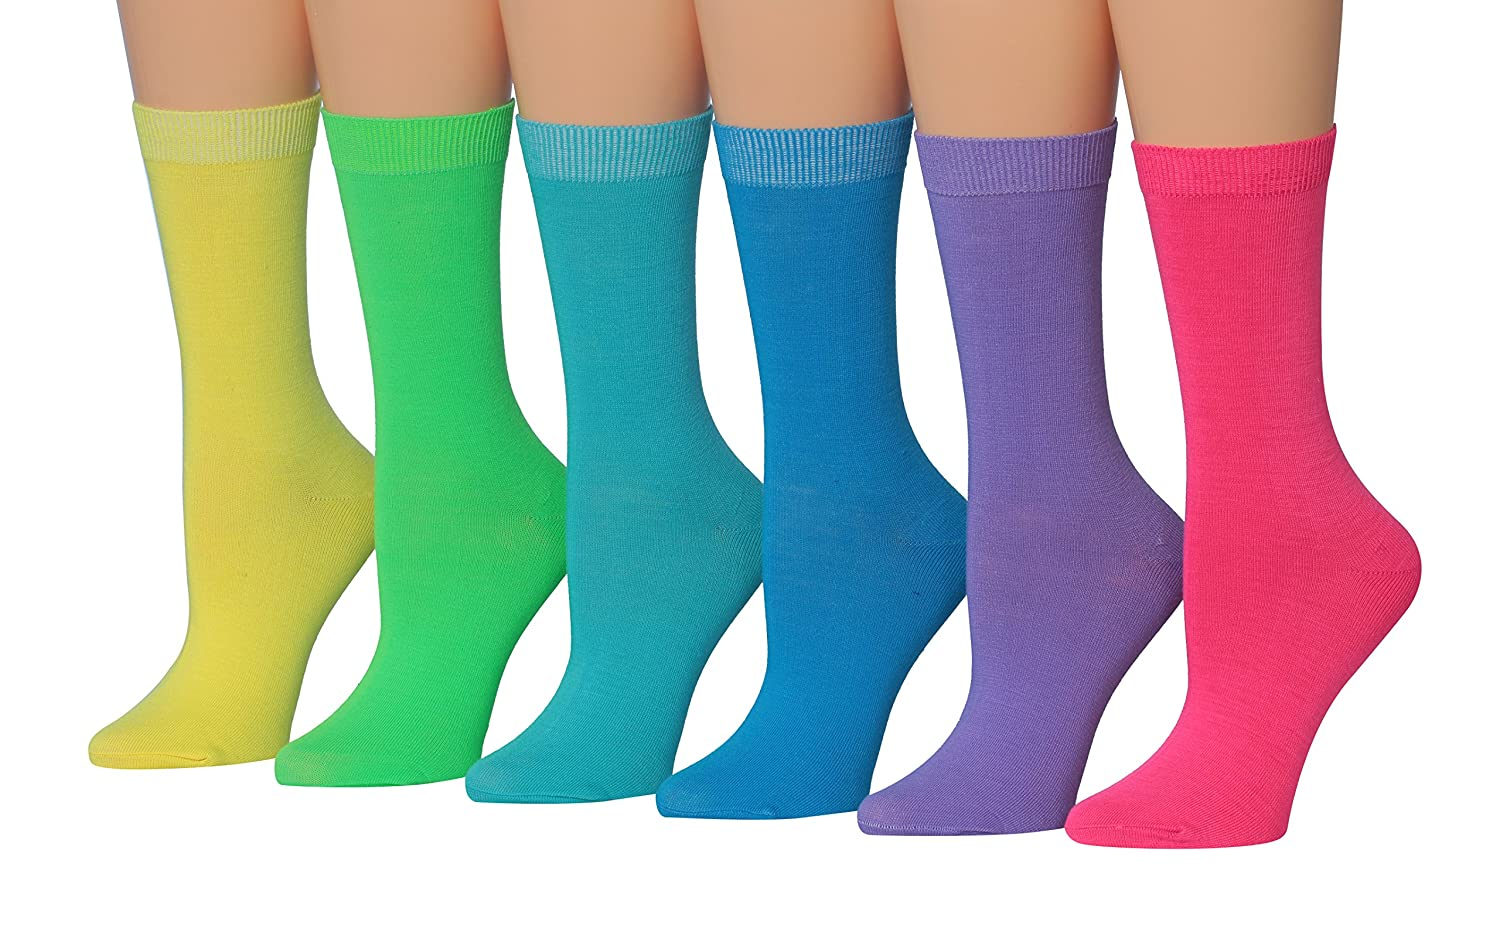 Tipi Toe Women's 6-Pairs Colorful Patterned Crew Socks WC14-A